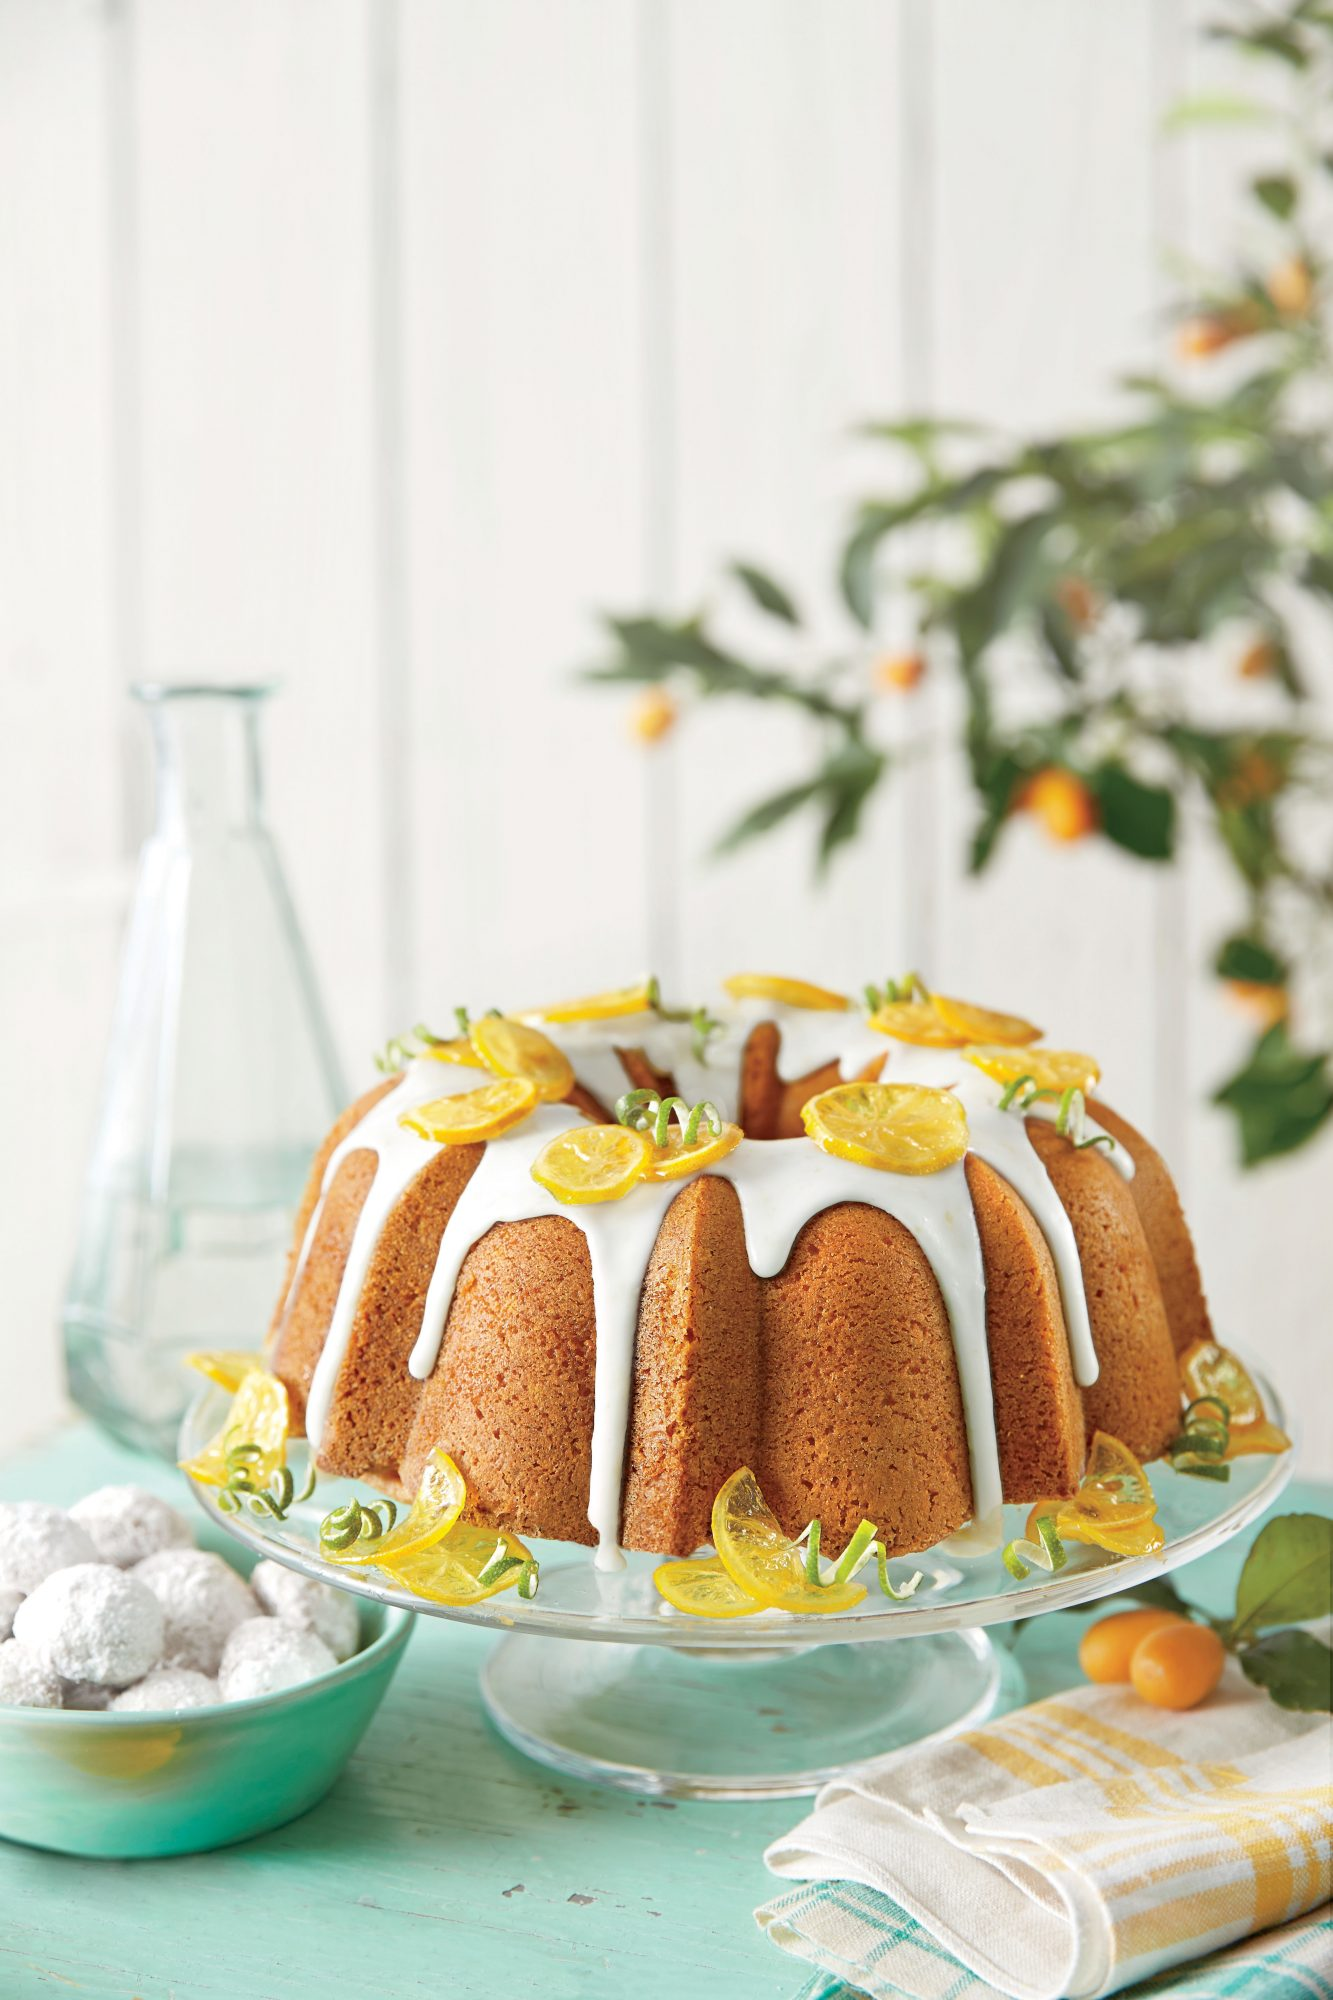 Lemon-Lime Pound Cake, pound cakes